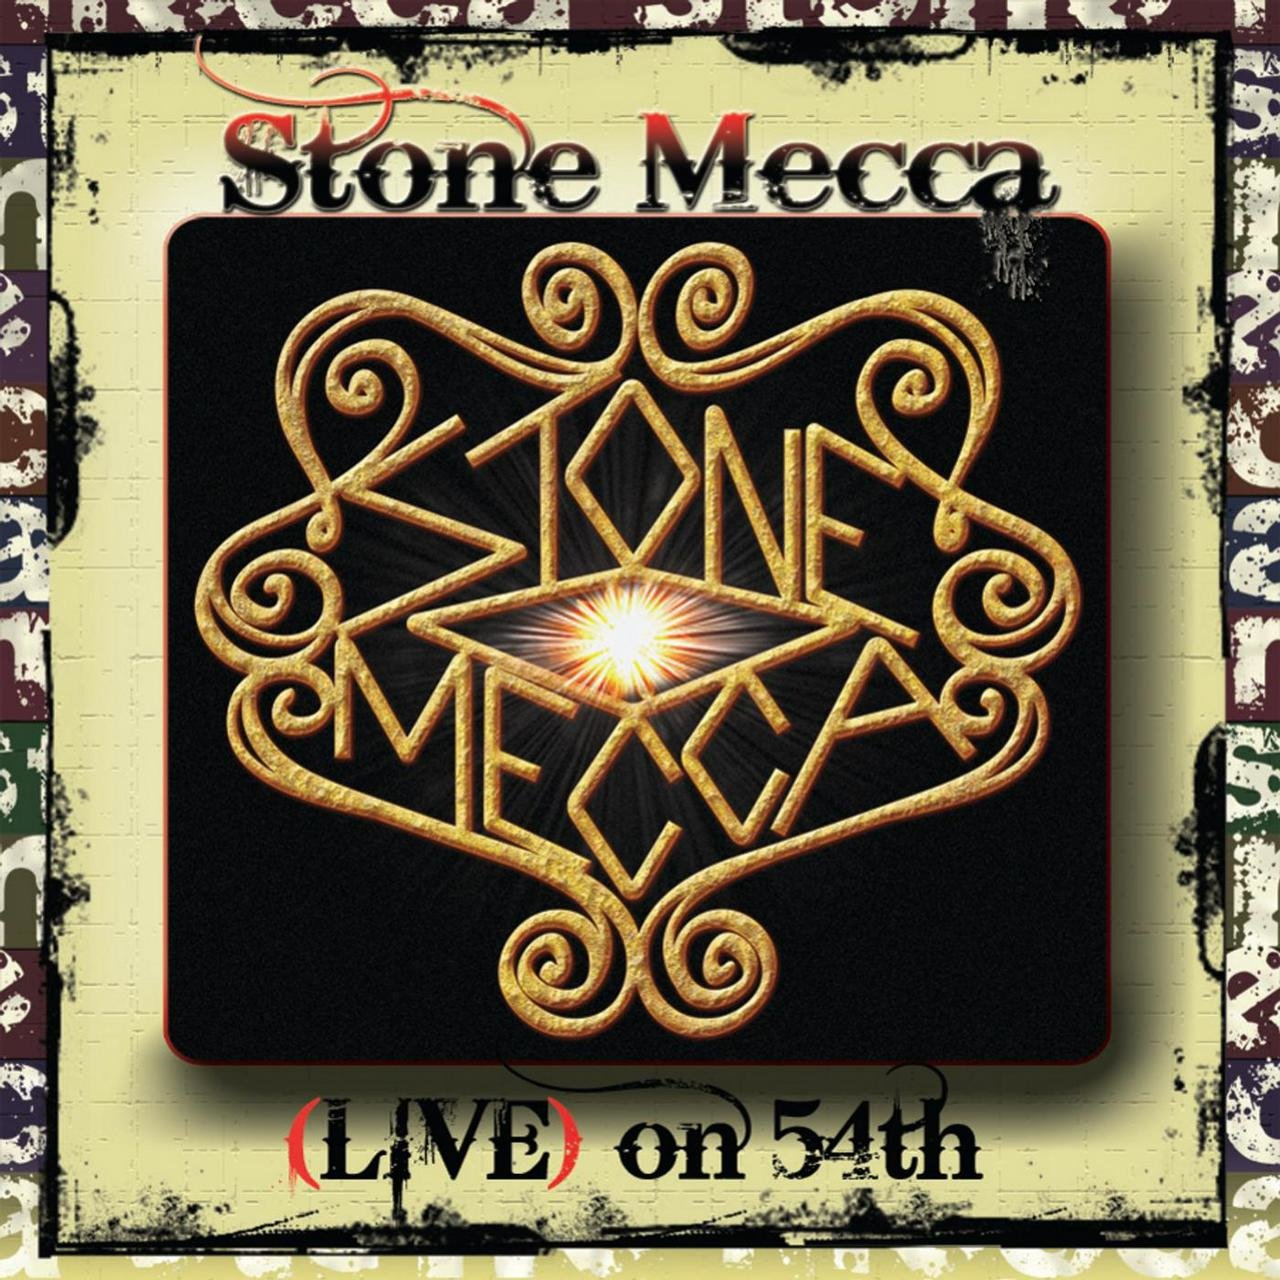 Stone Mecca Live on 54th